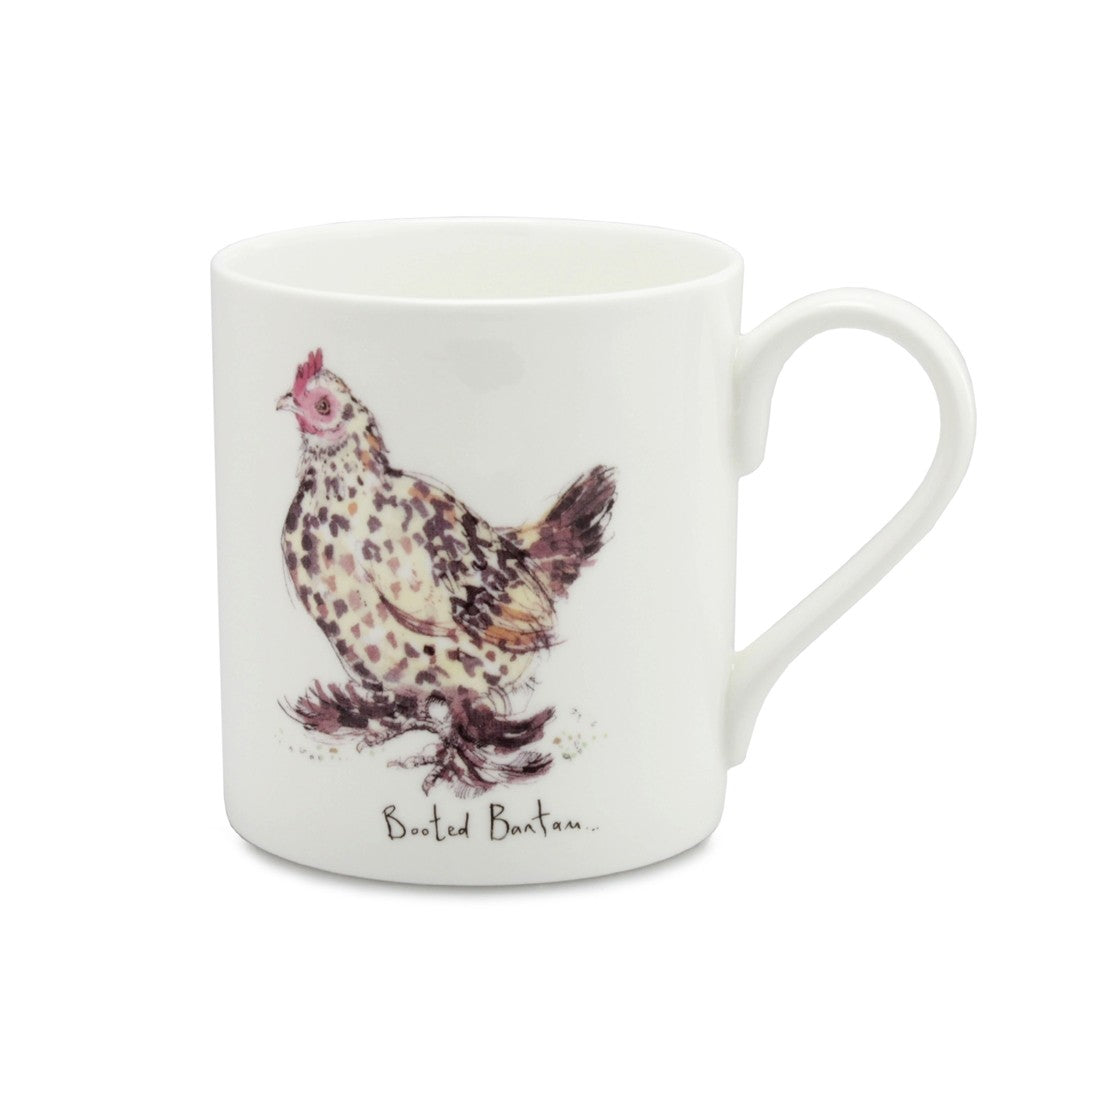 Booted Bantam China Mug by Madeleine Floyd